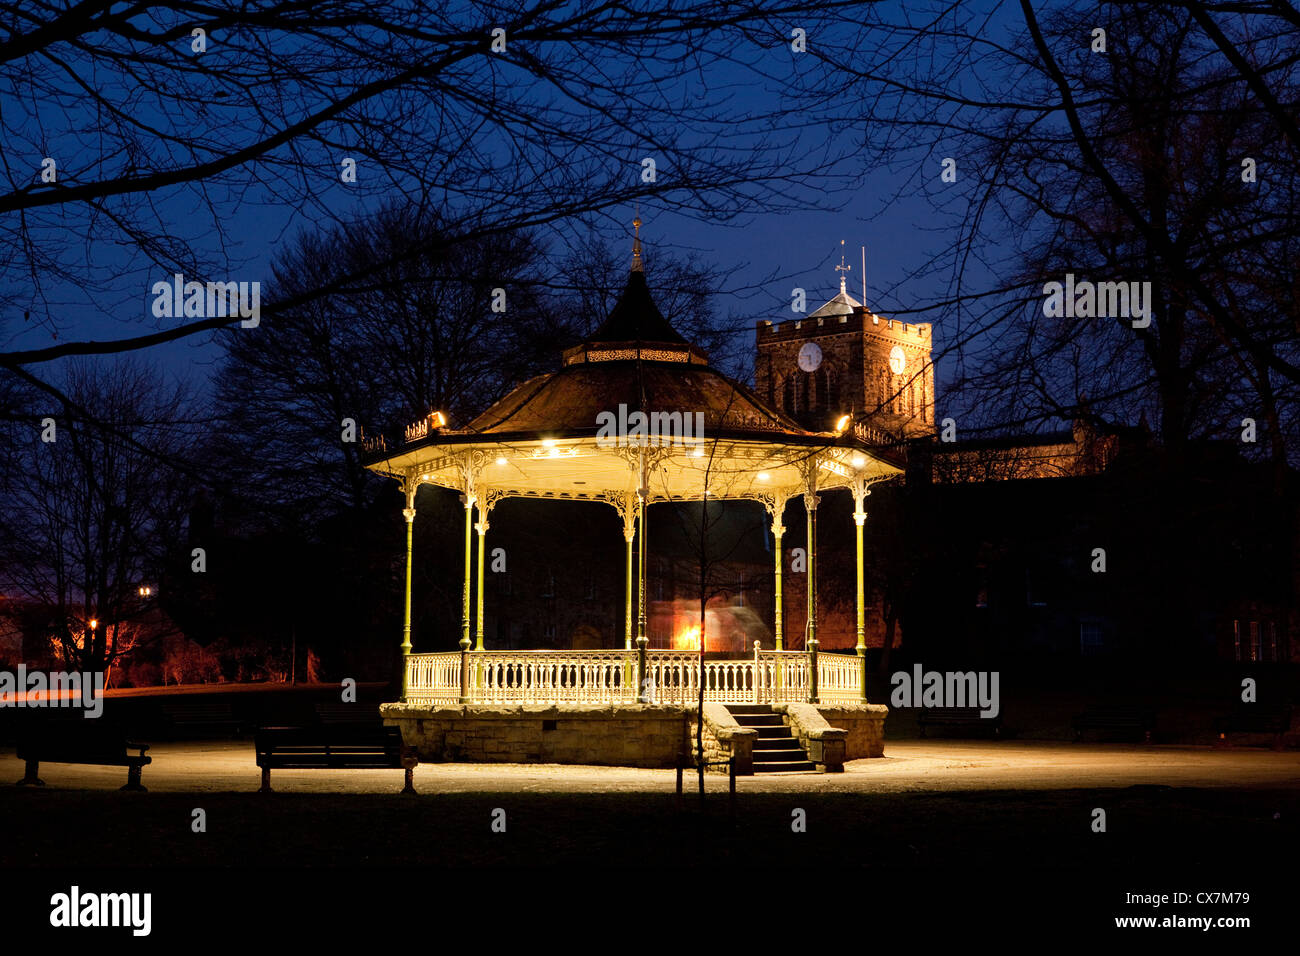 Bandstand in Hexham Park at night with floodlit Abbey. Northumberland - Stock Image